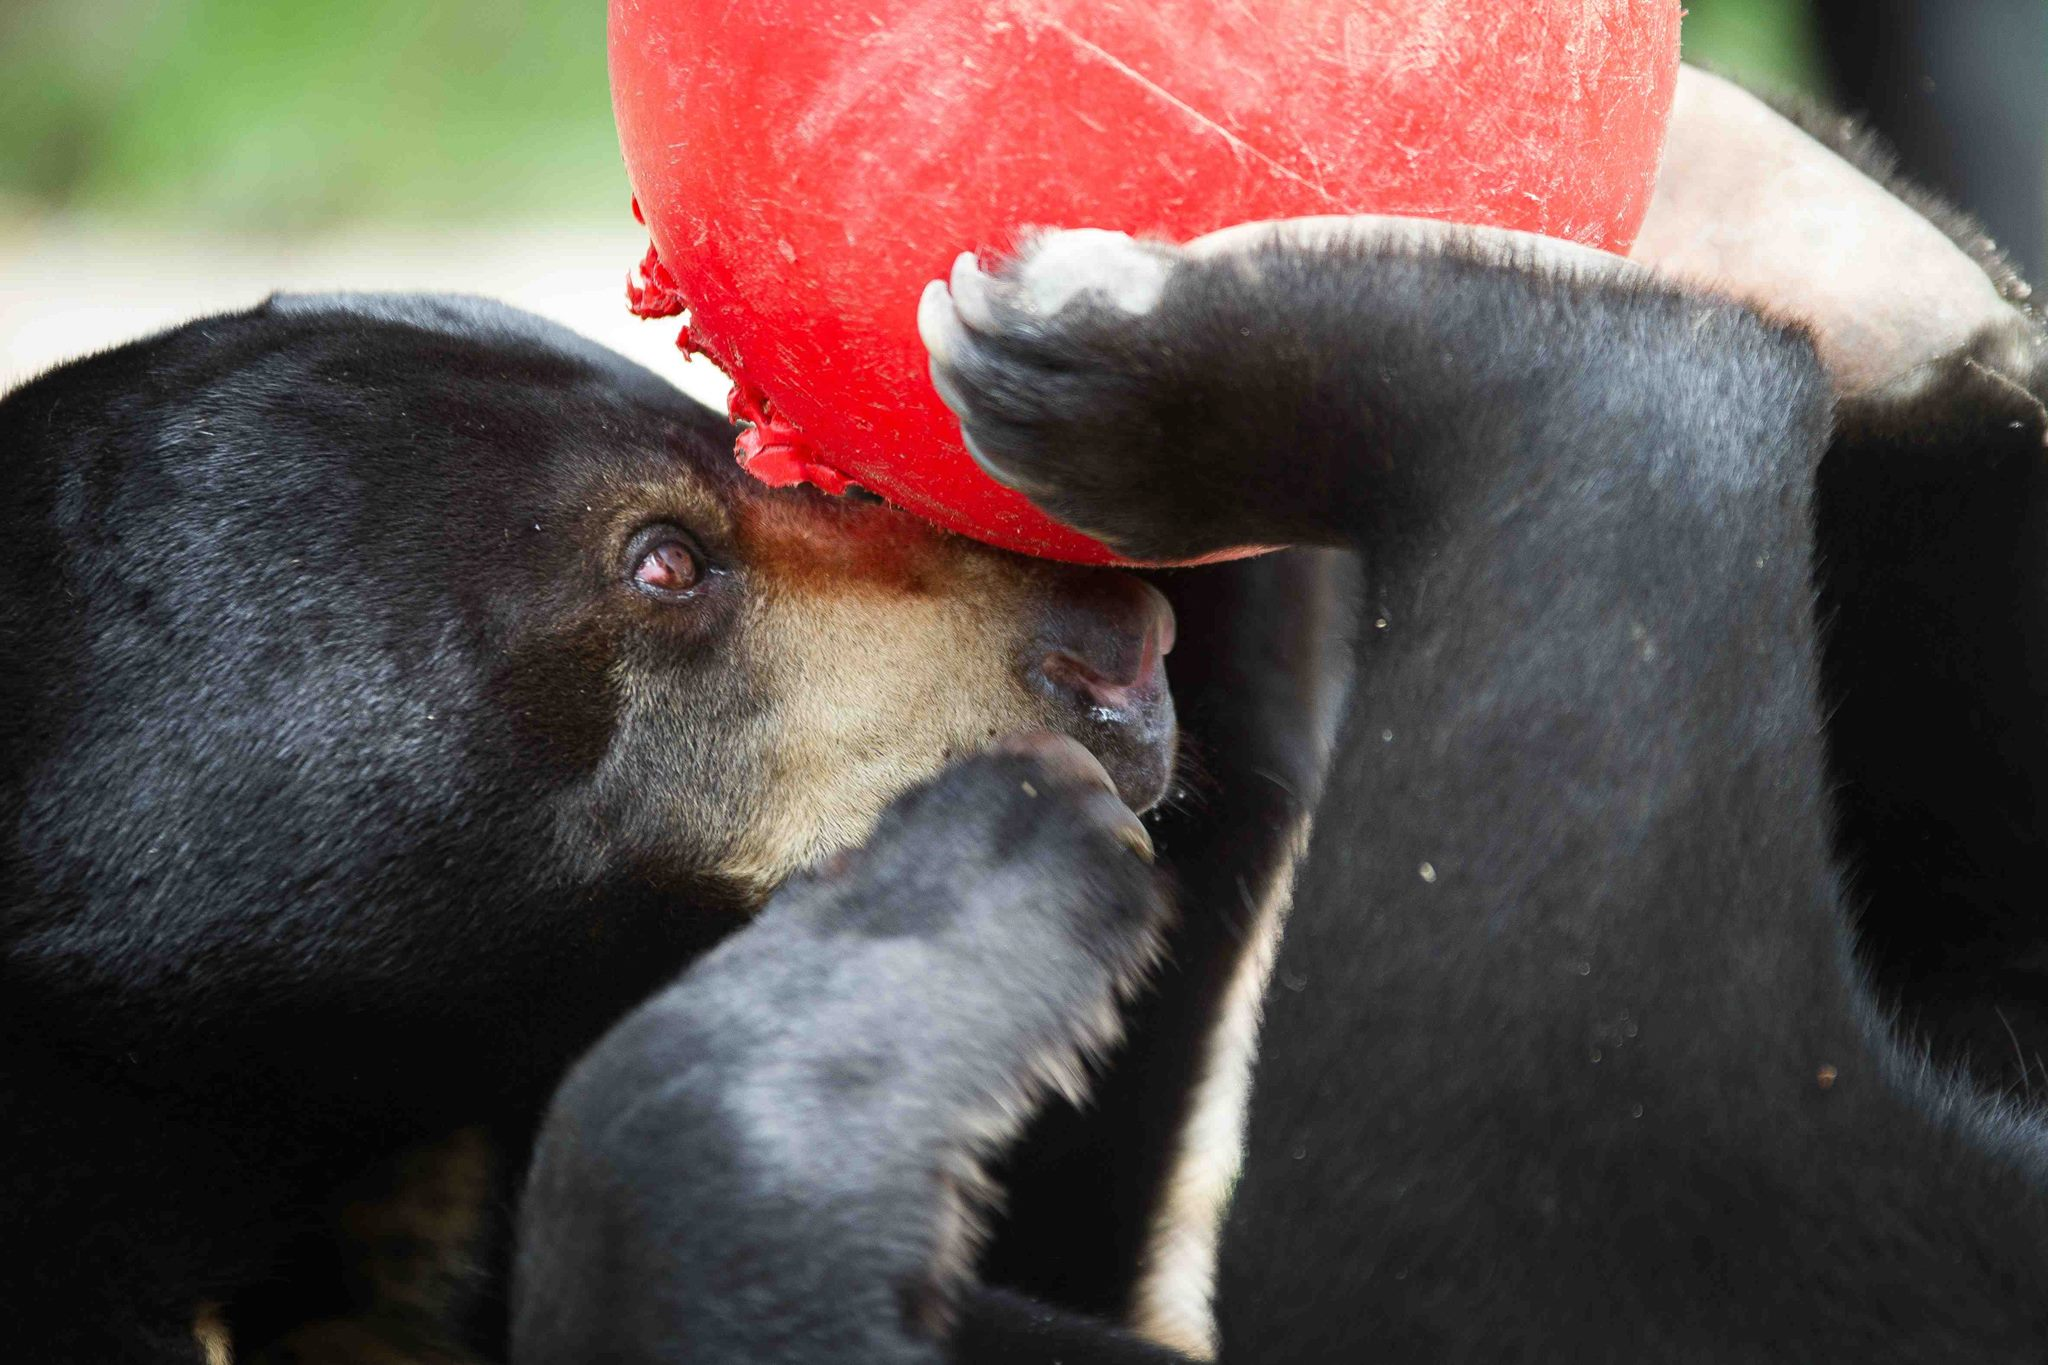 A rescued bear plays in an animal sanctuary. Photo by Peter Yuen